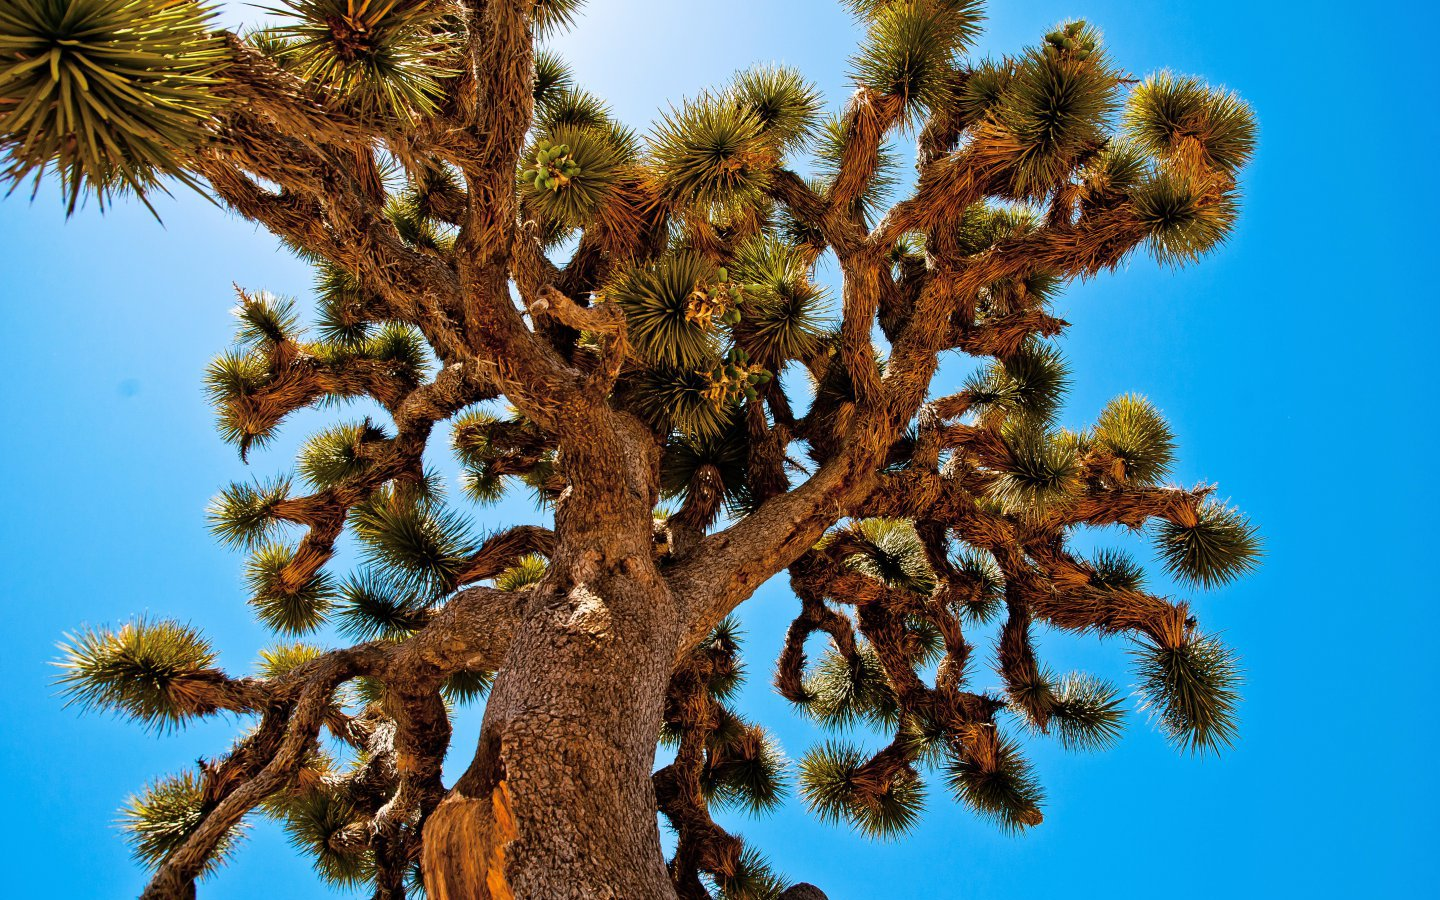 Joshua trees belong to the yucca family. They grow only in the Mojave Desert.